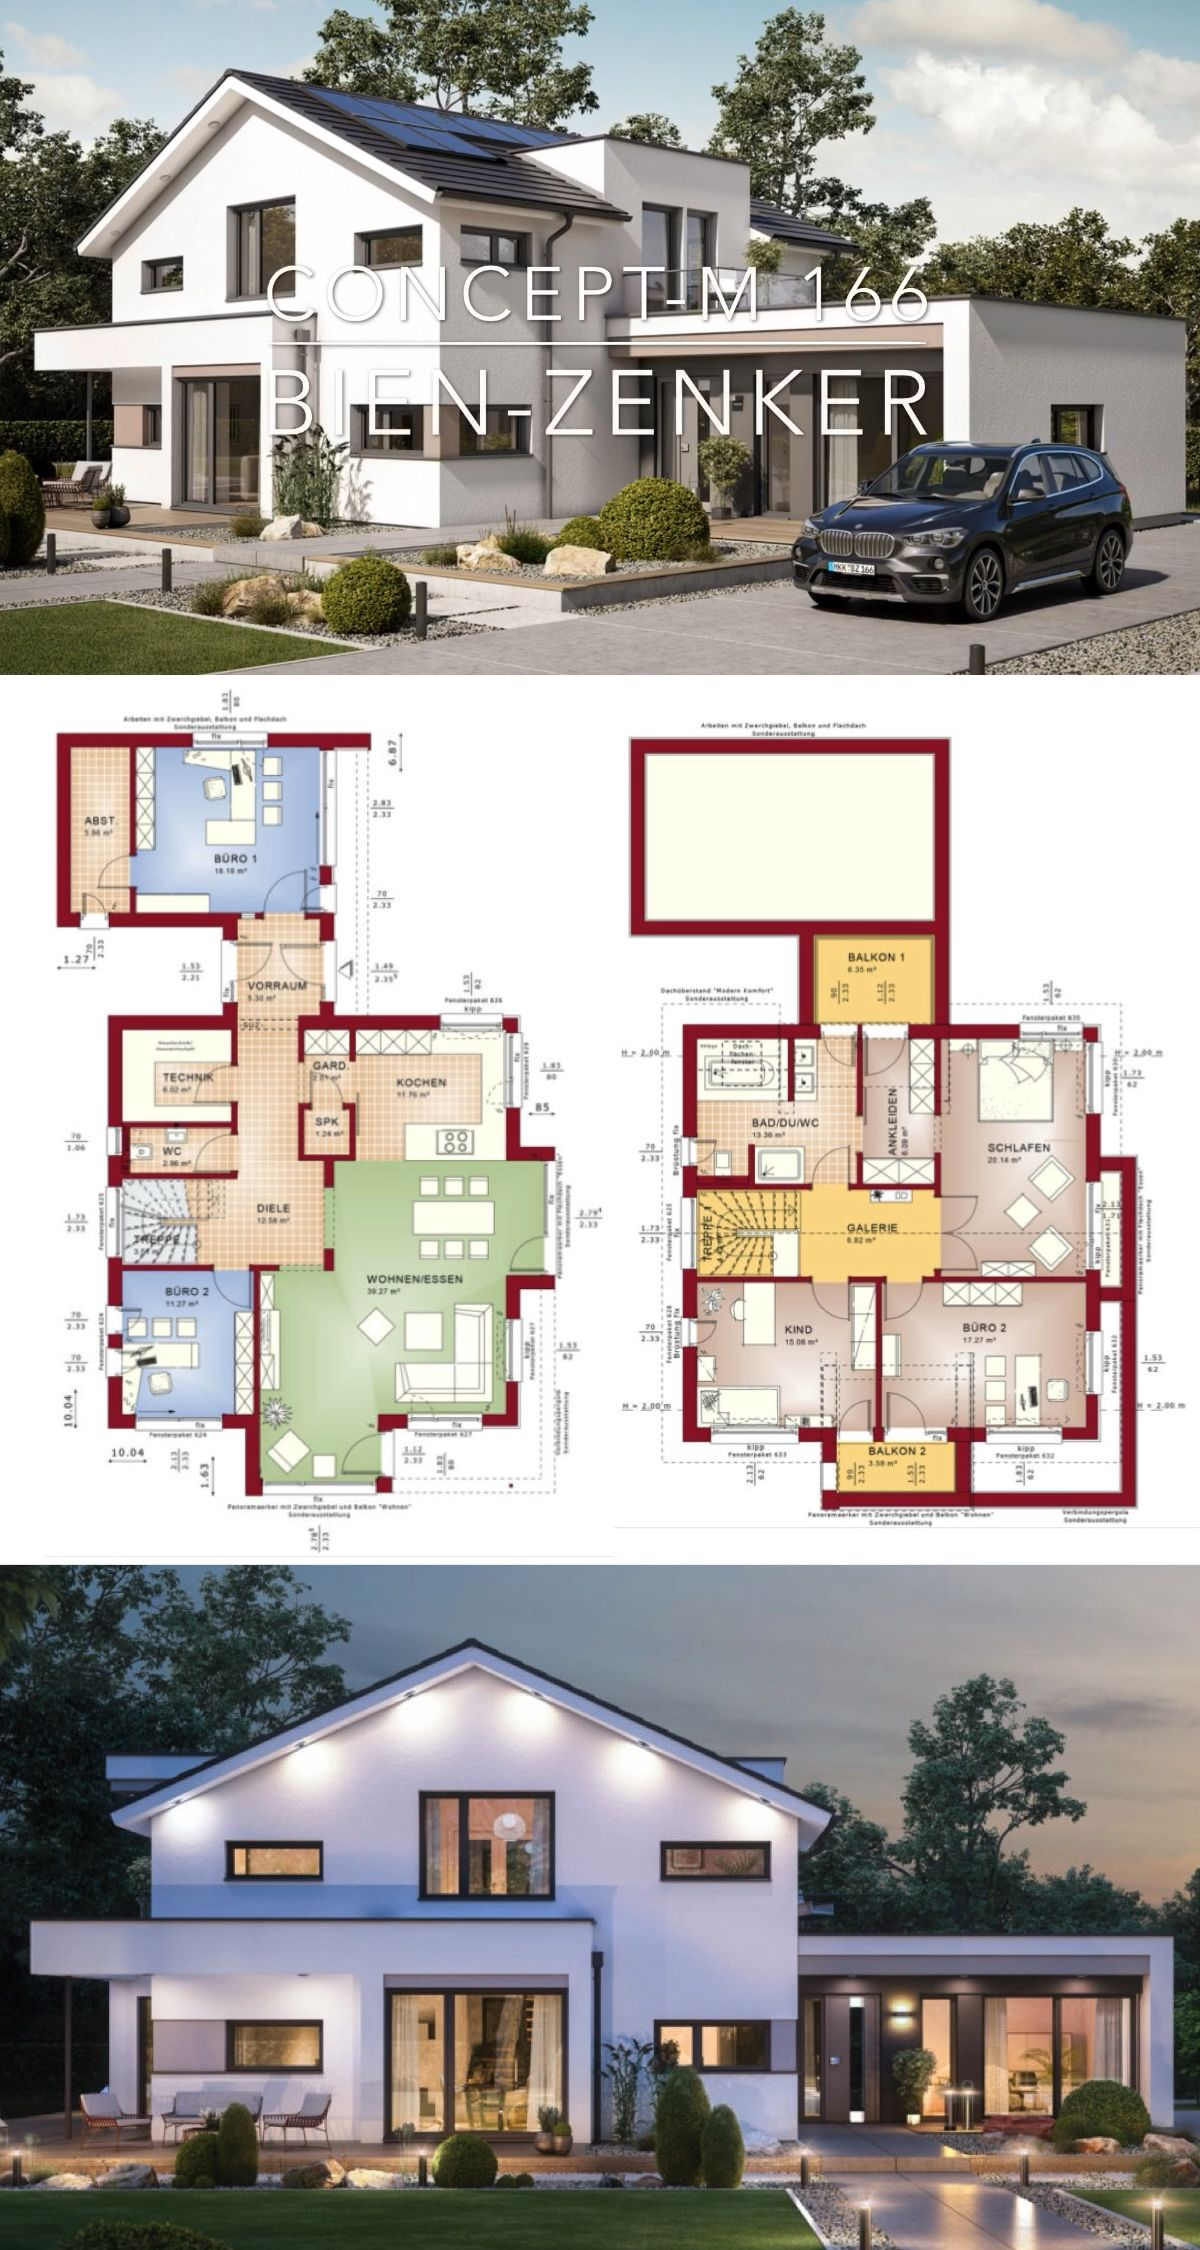 Modern Architecture House Plan & Interior Design – Concept-M 166 – Popular House Plans